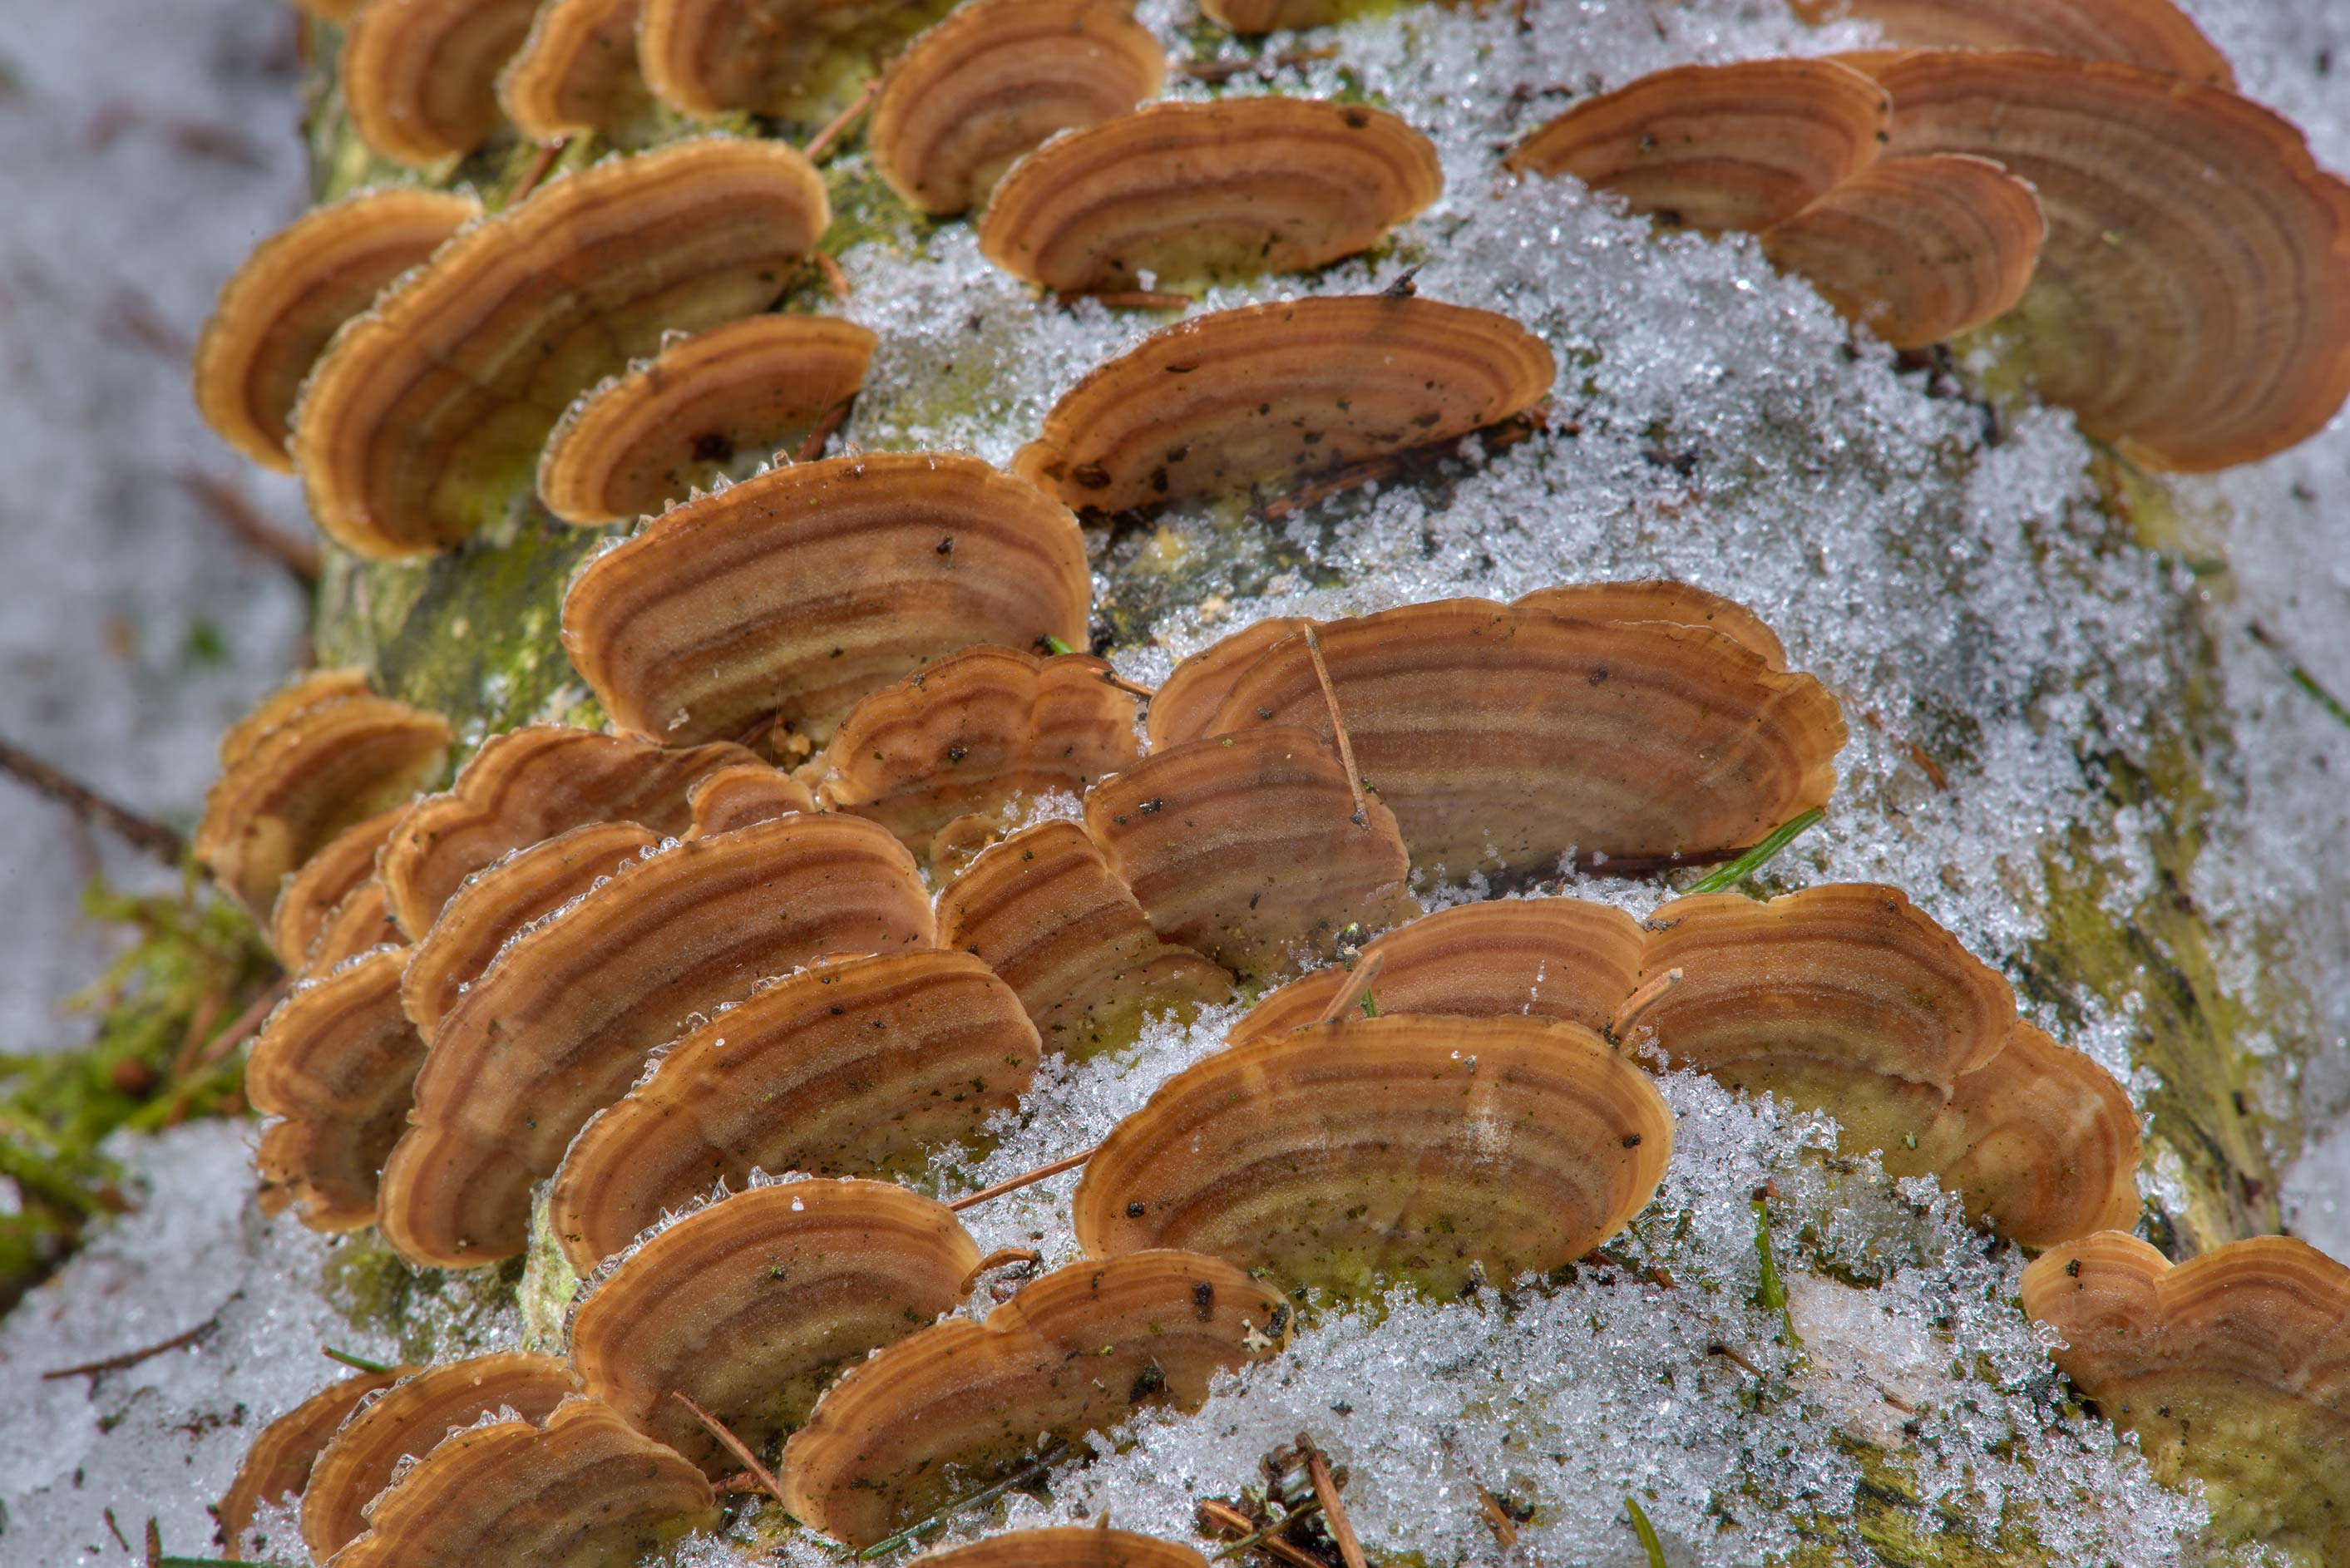 Purple toothed polypore mushrooms (Trichaptum...Pesochny near St.Petersburg. Russia